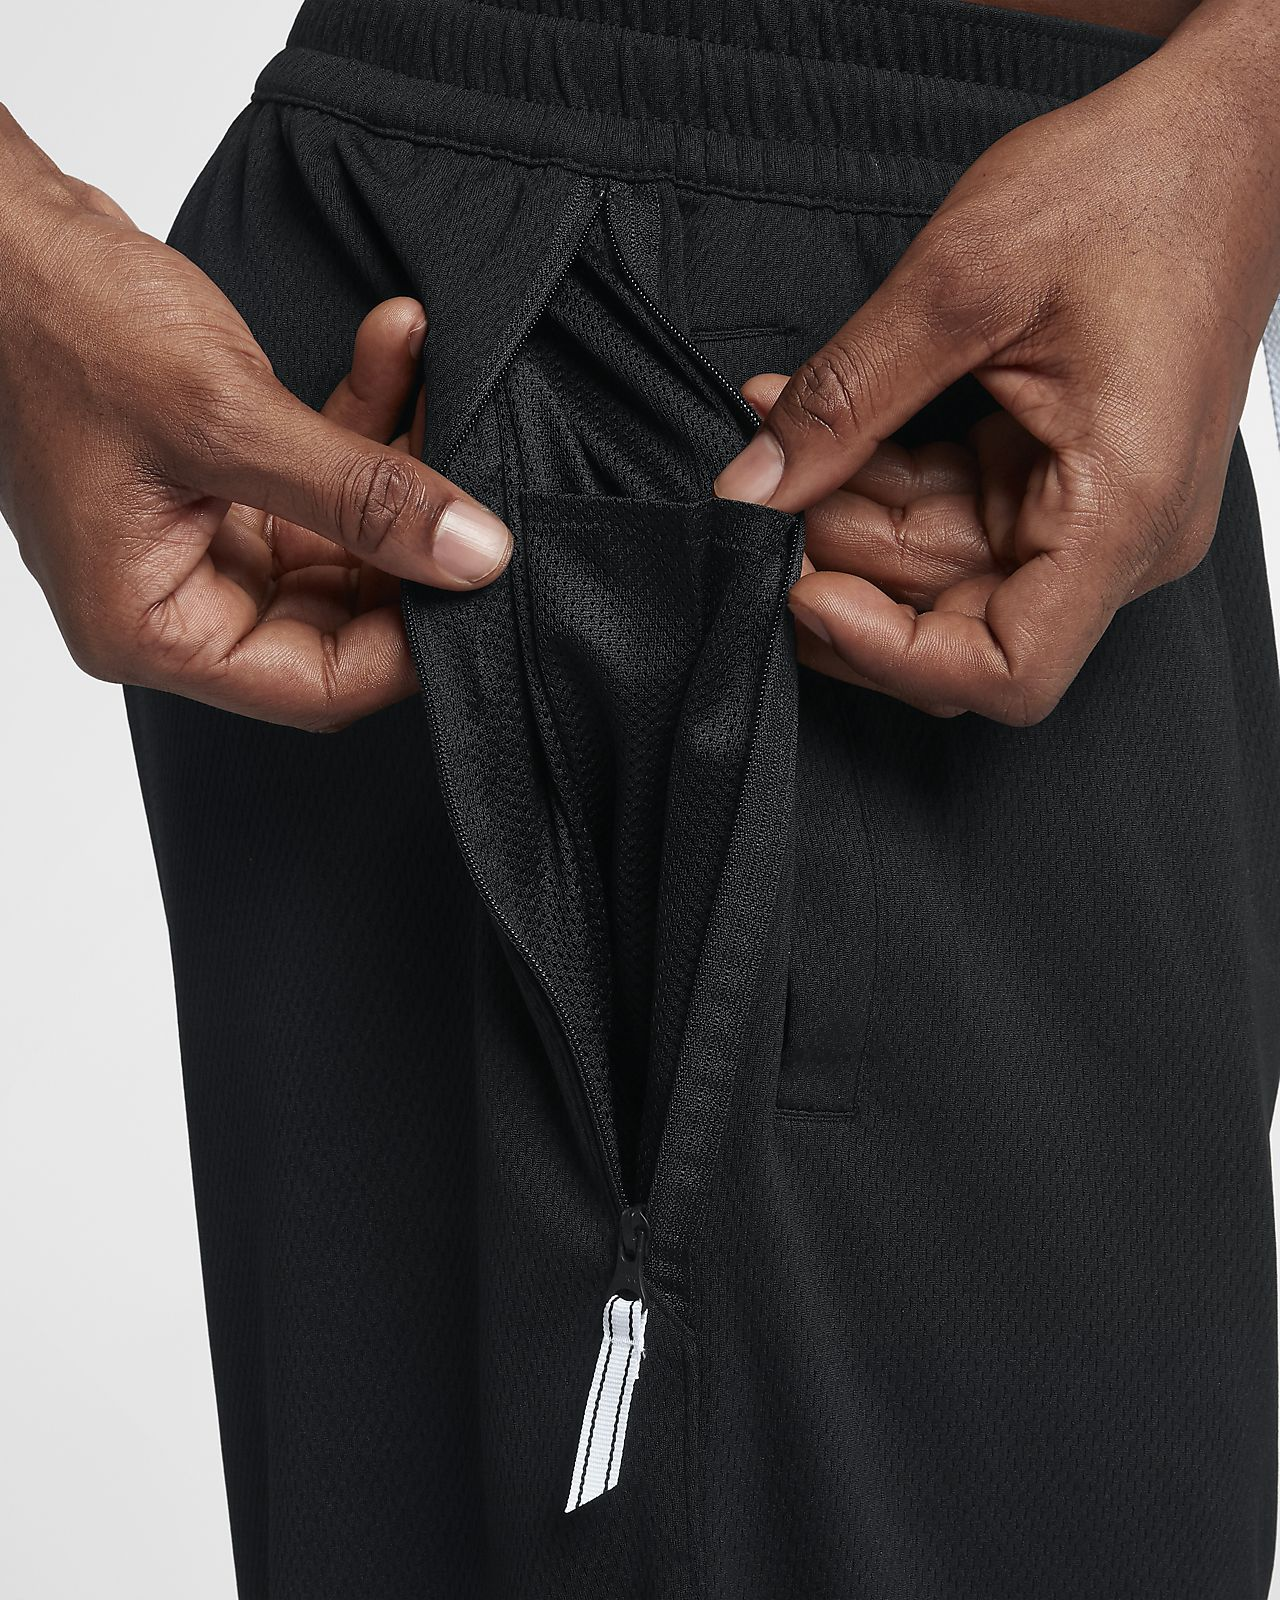 acf6d1adf3cb Nike Dri-FIT DNA Men s Basketball Shorts. Nike.com